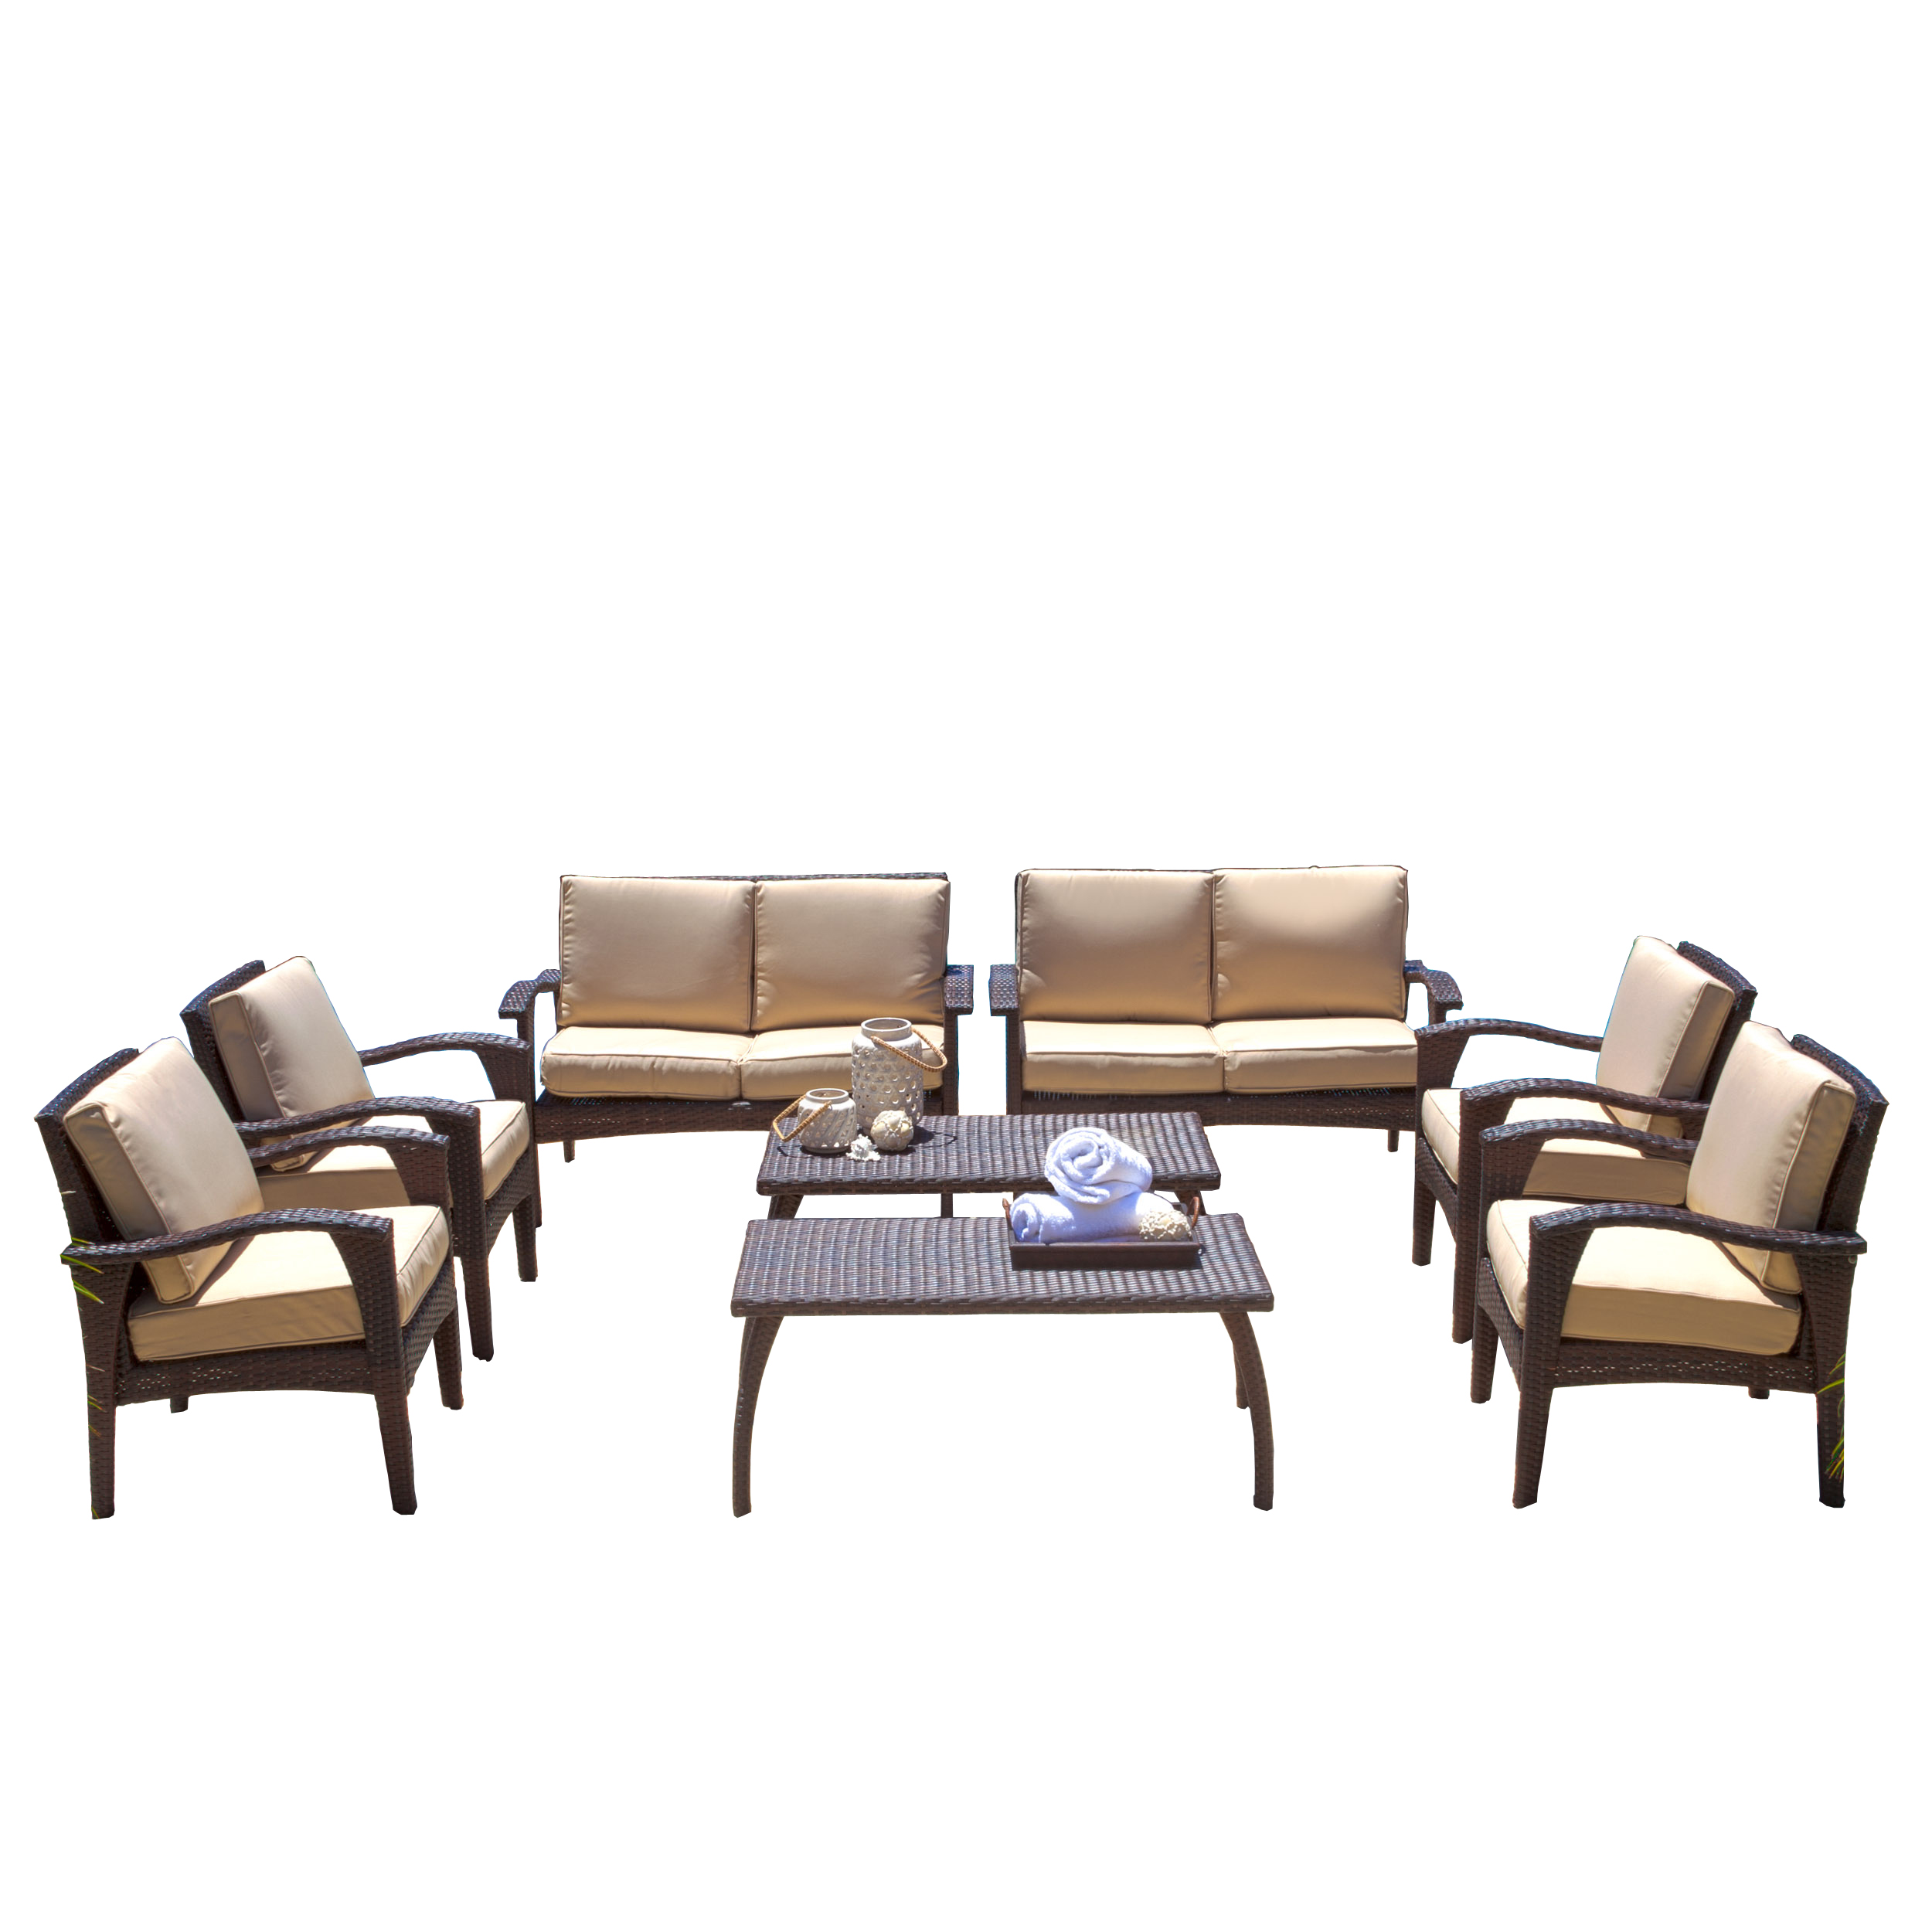 Amos Outdoor 8 Piece Brown Wicker Seating Set with Cushions